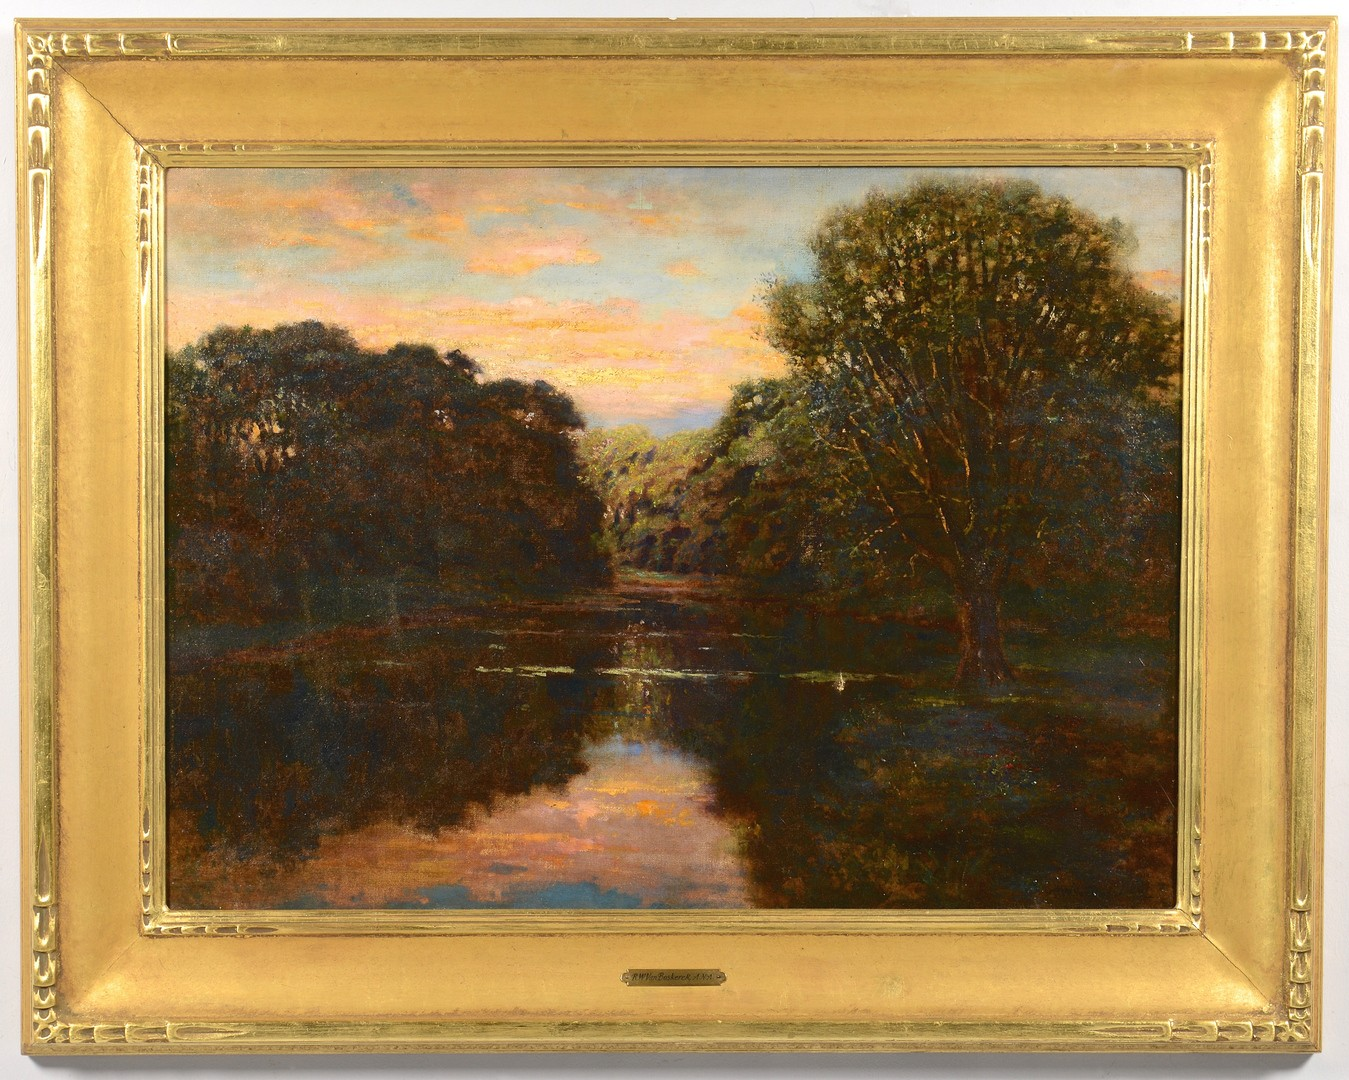 Lot 462: R.W. Van Boskerck Riverscape